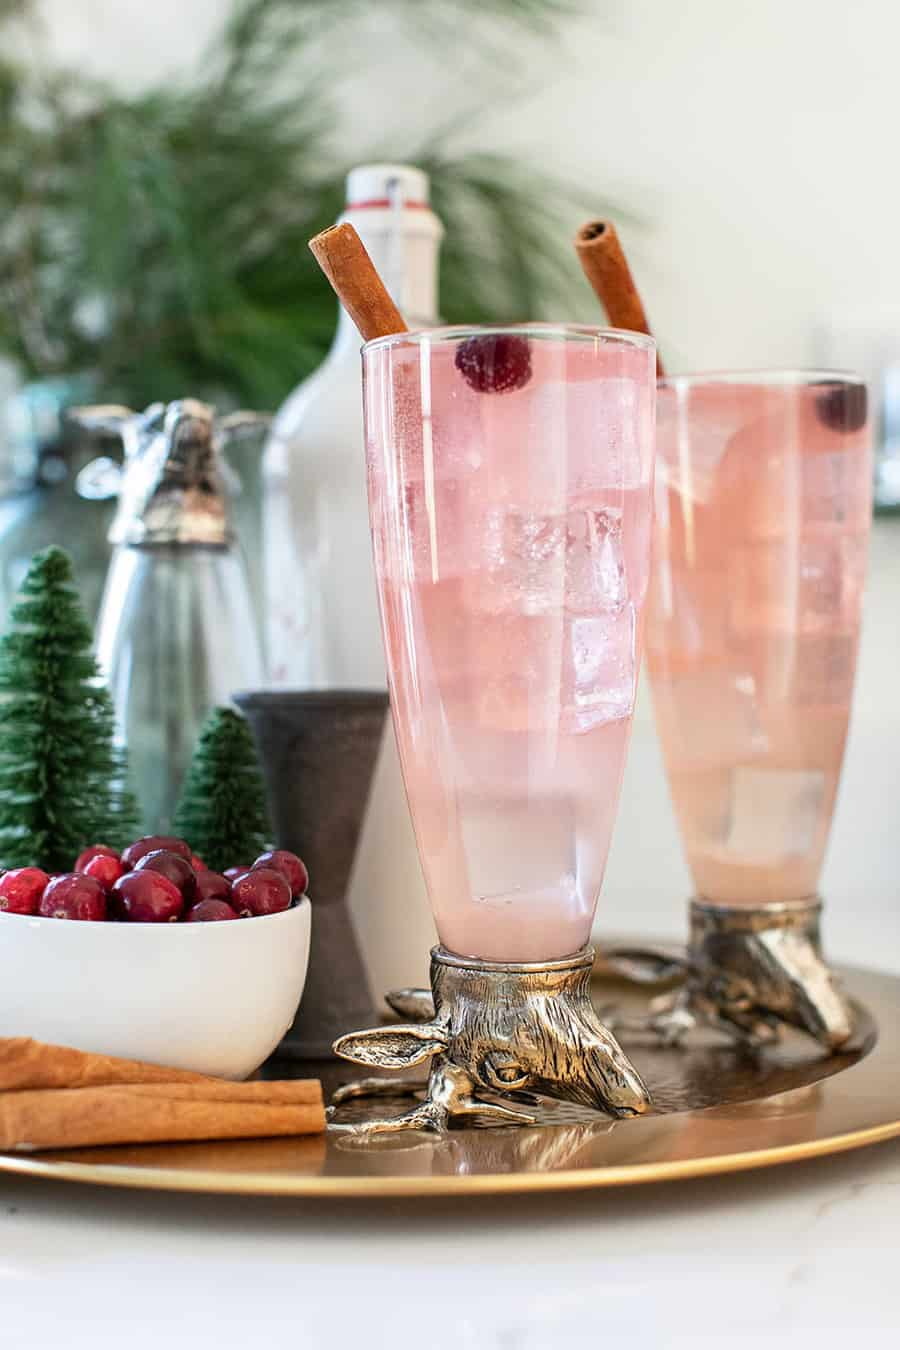 Rudolph collins recipe in tall reindeer glasses